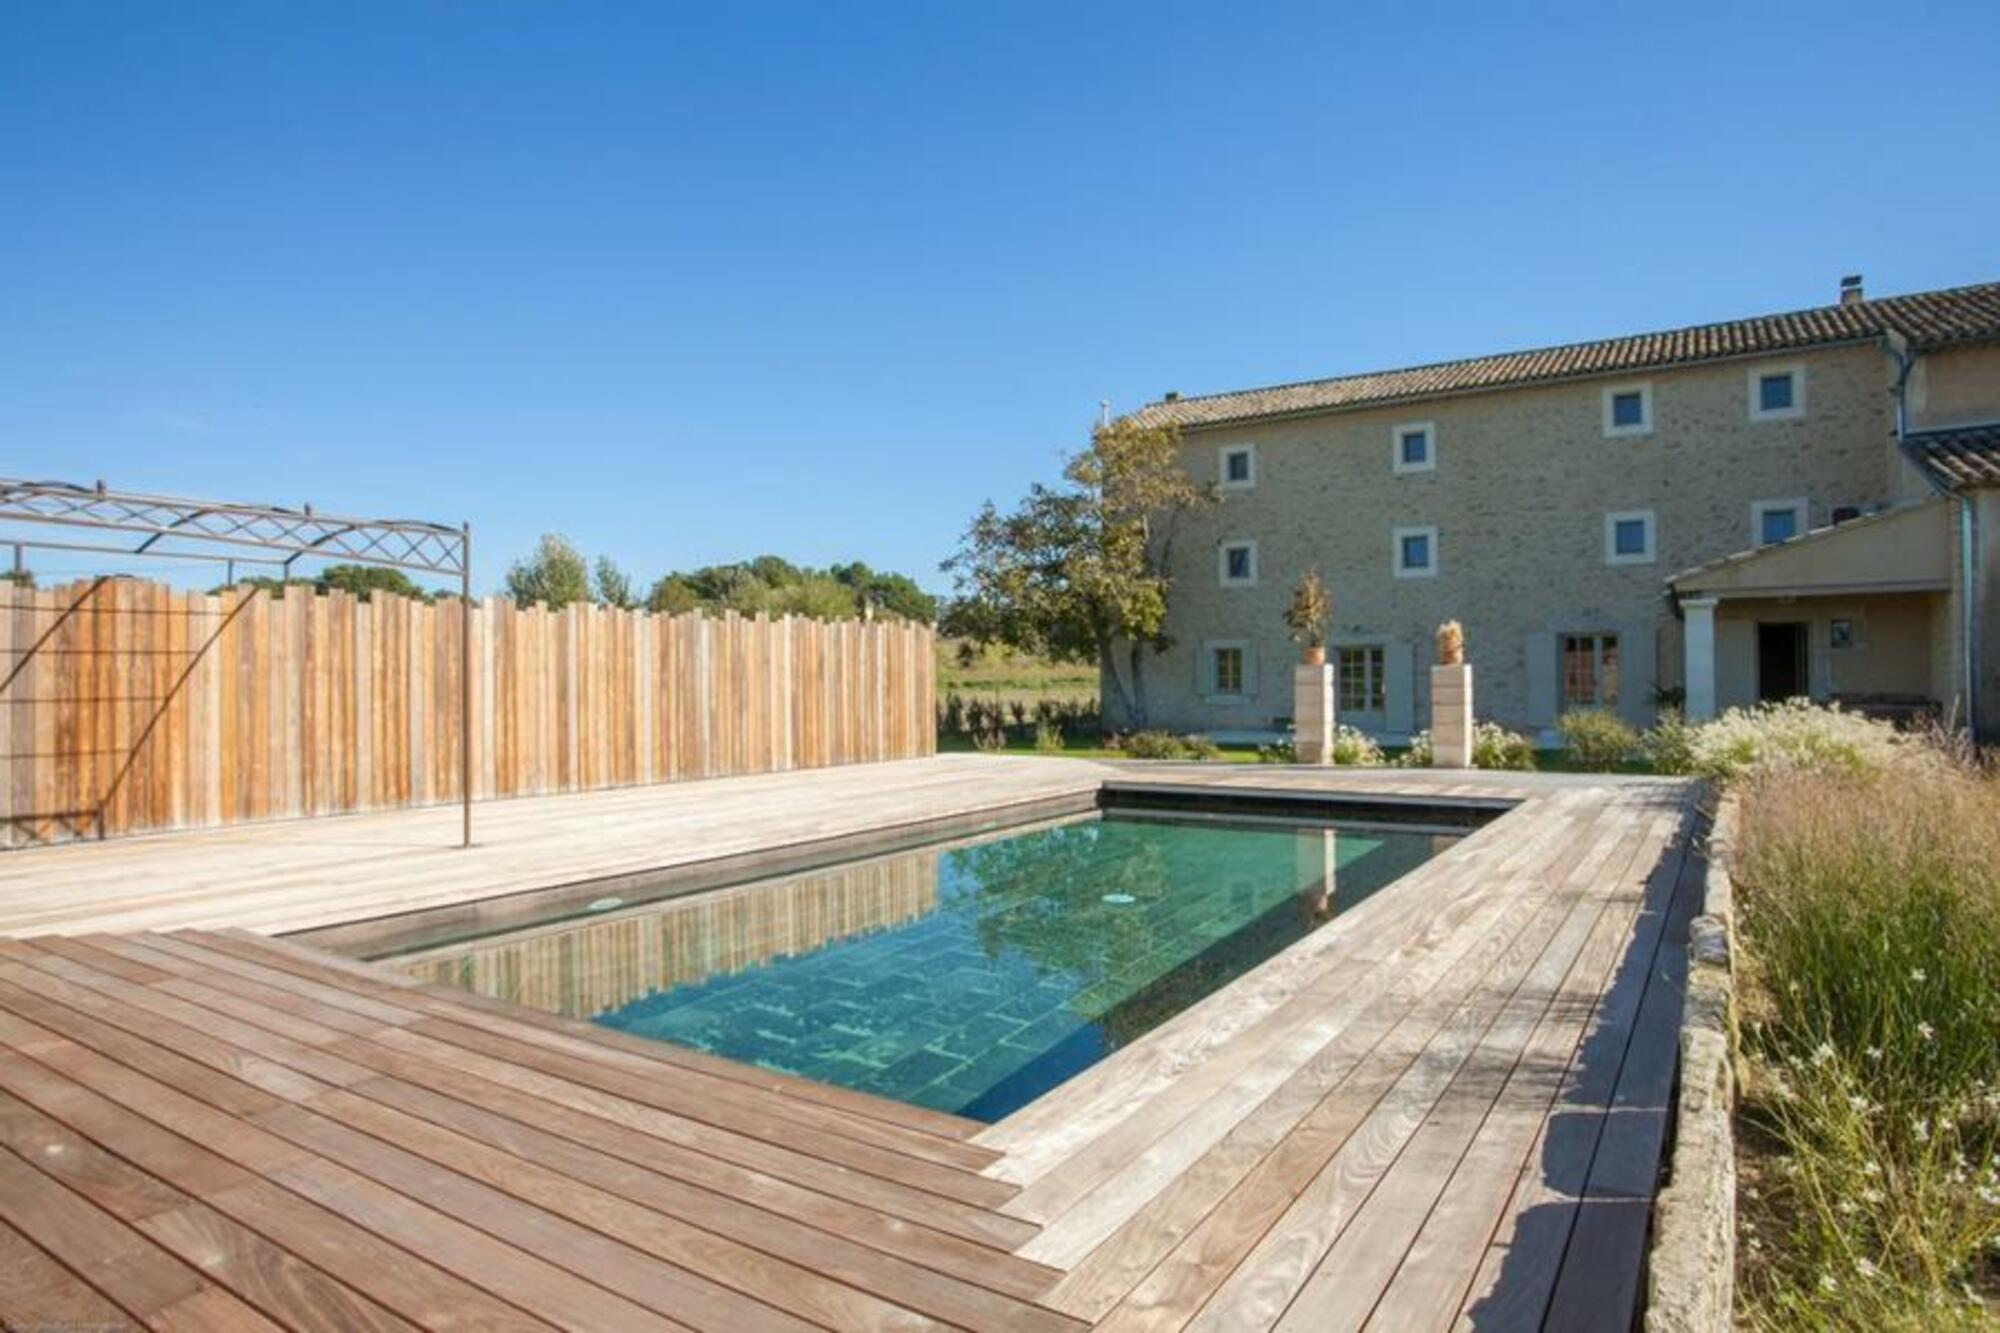 Apartment BASTIDE DES MERVEILLES - 100  DETENTE photo 23380275